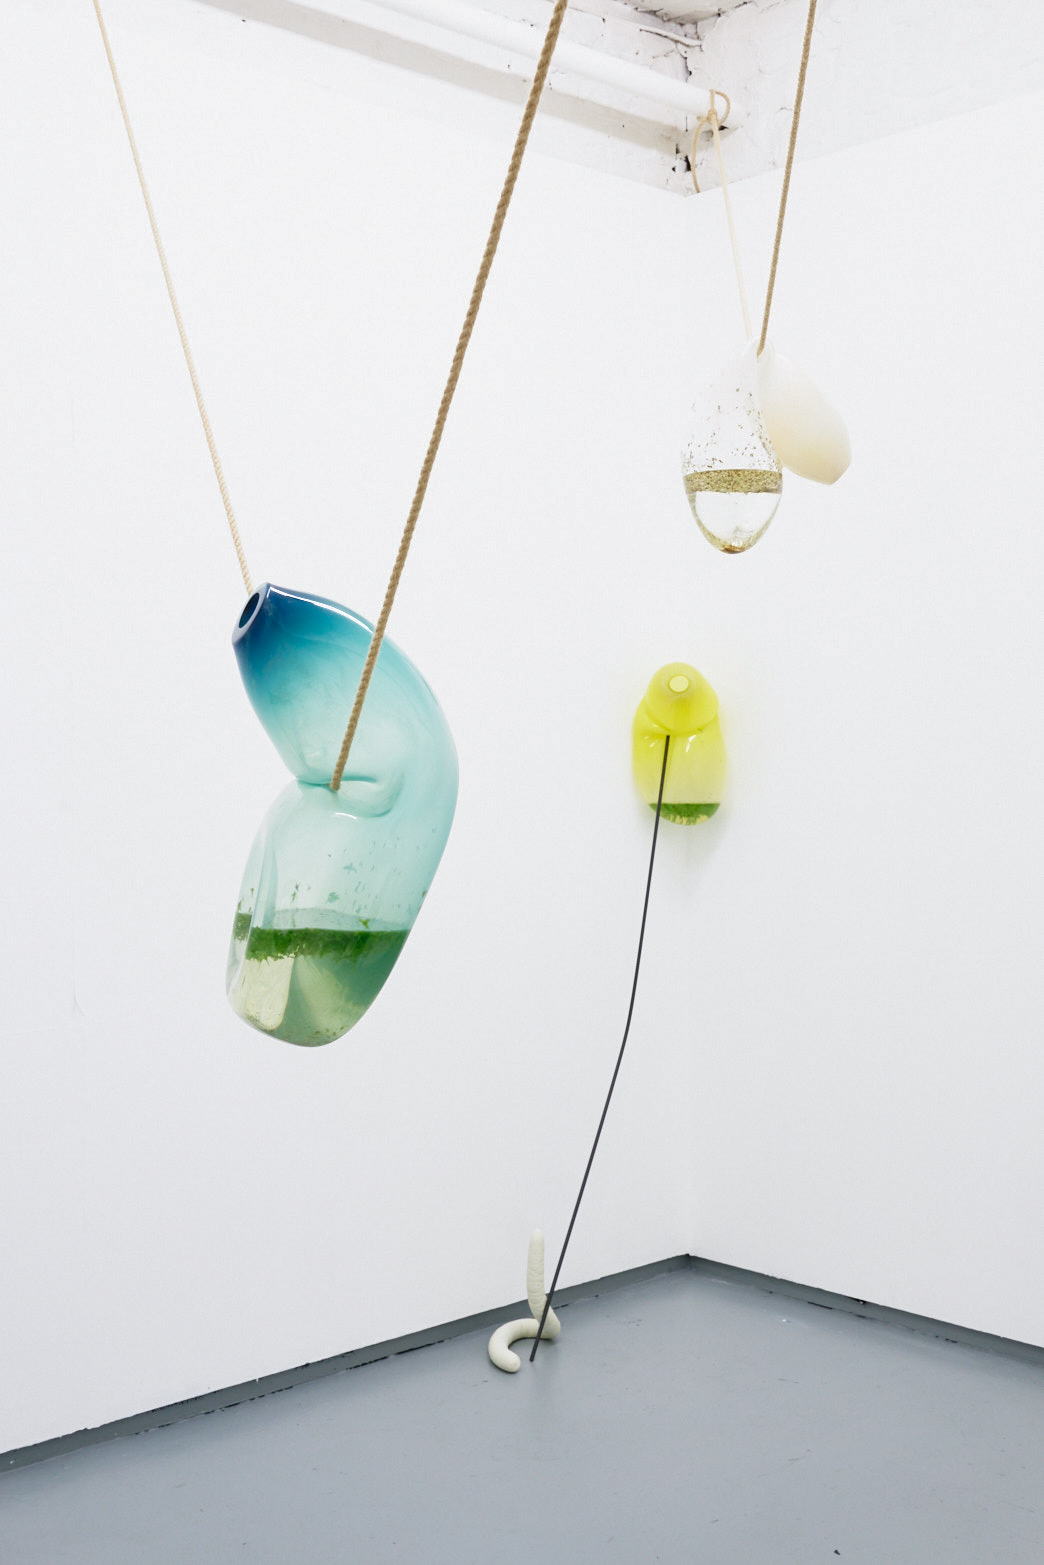 Julia Crabtree and William Evans, Clenched, 2018, Glass, uranium glass, pond life, rope